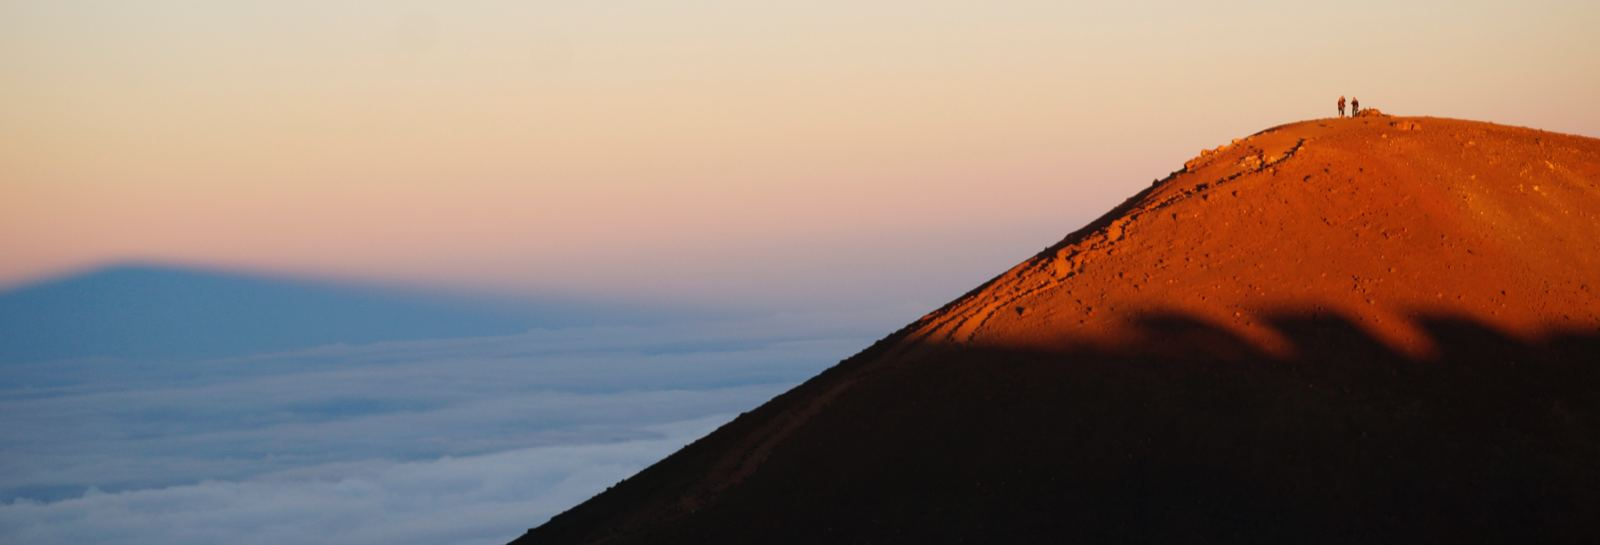 DRH_DestinationBucketList_maunakea7